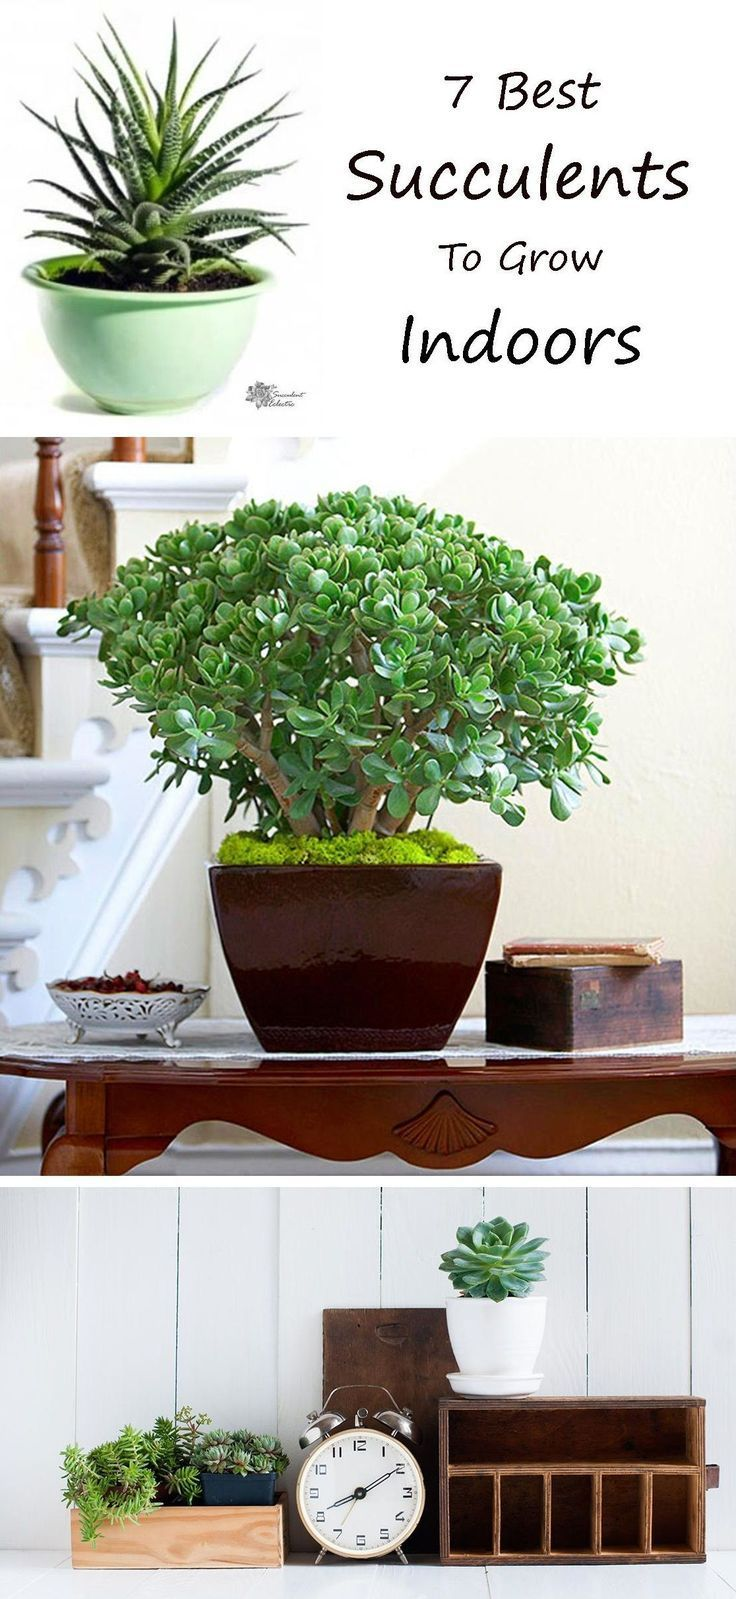 7 Super Simple Succulents to Grow Indoors